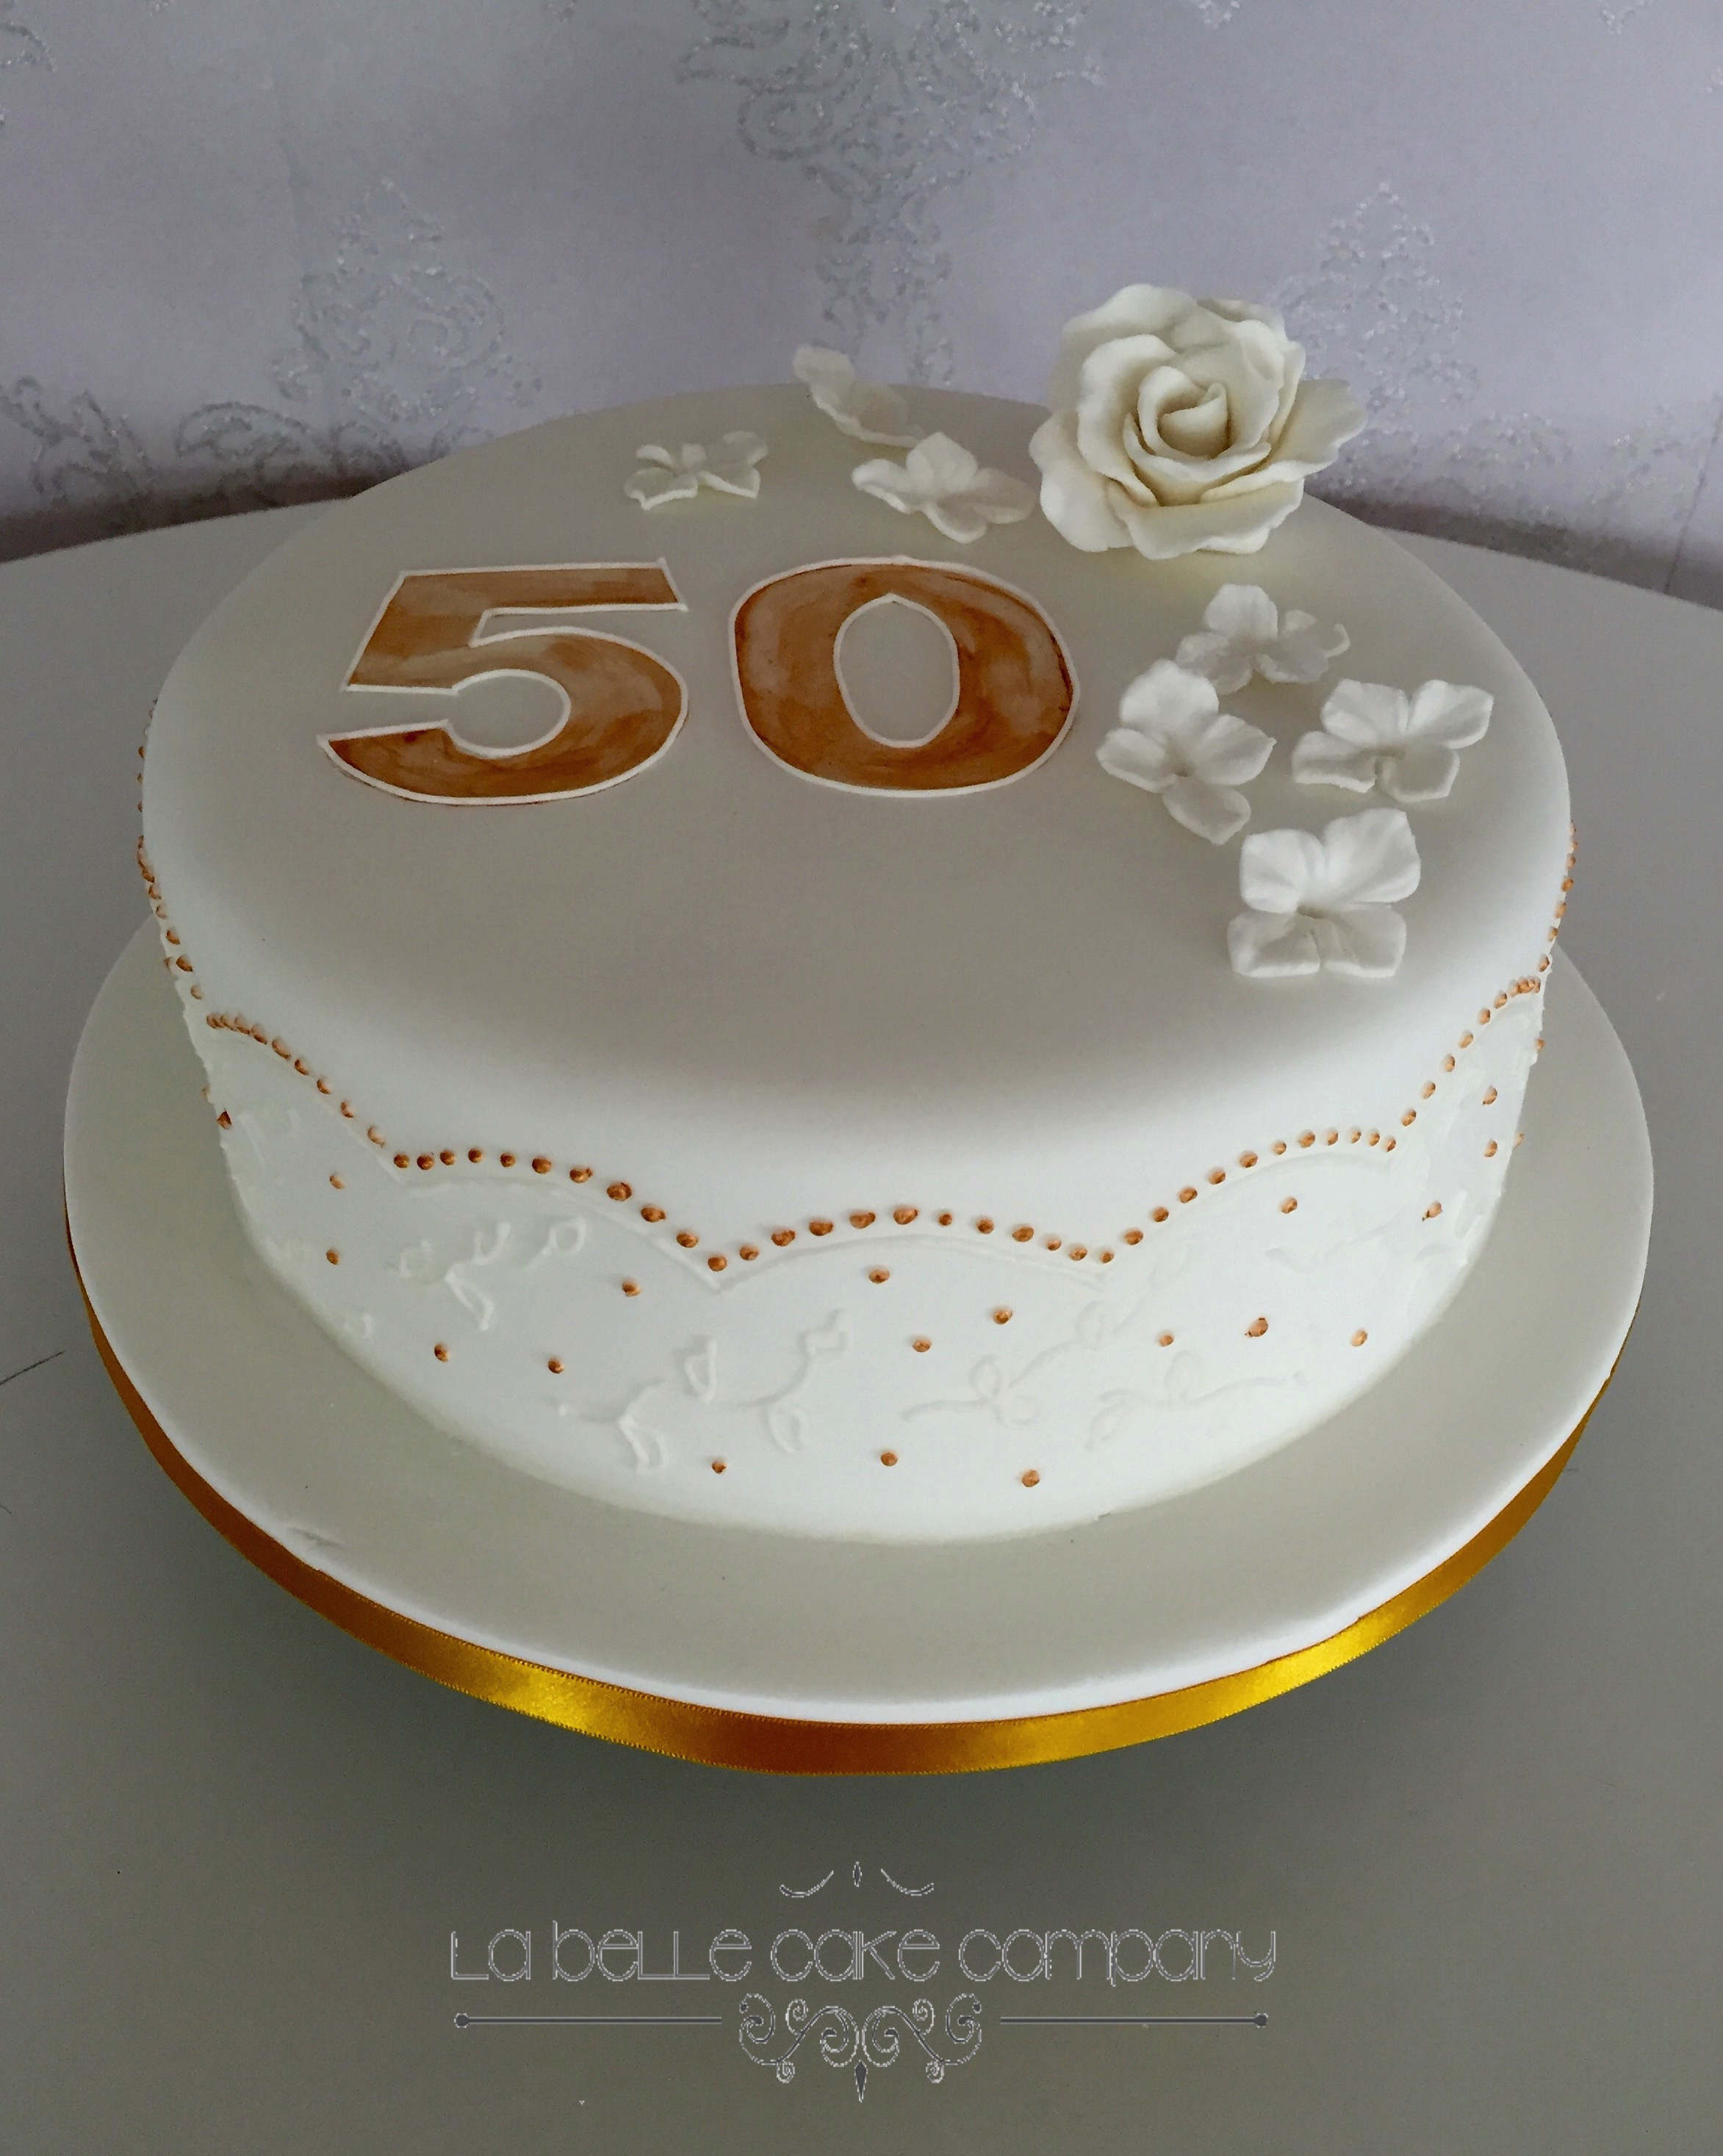 One Tier White And Gold Hand Piped 50th Female Birthday Cakes Bedfordshire Hertfordshire London